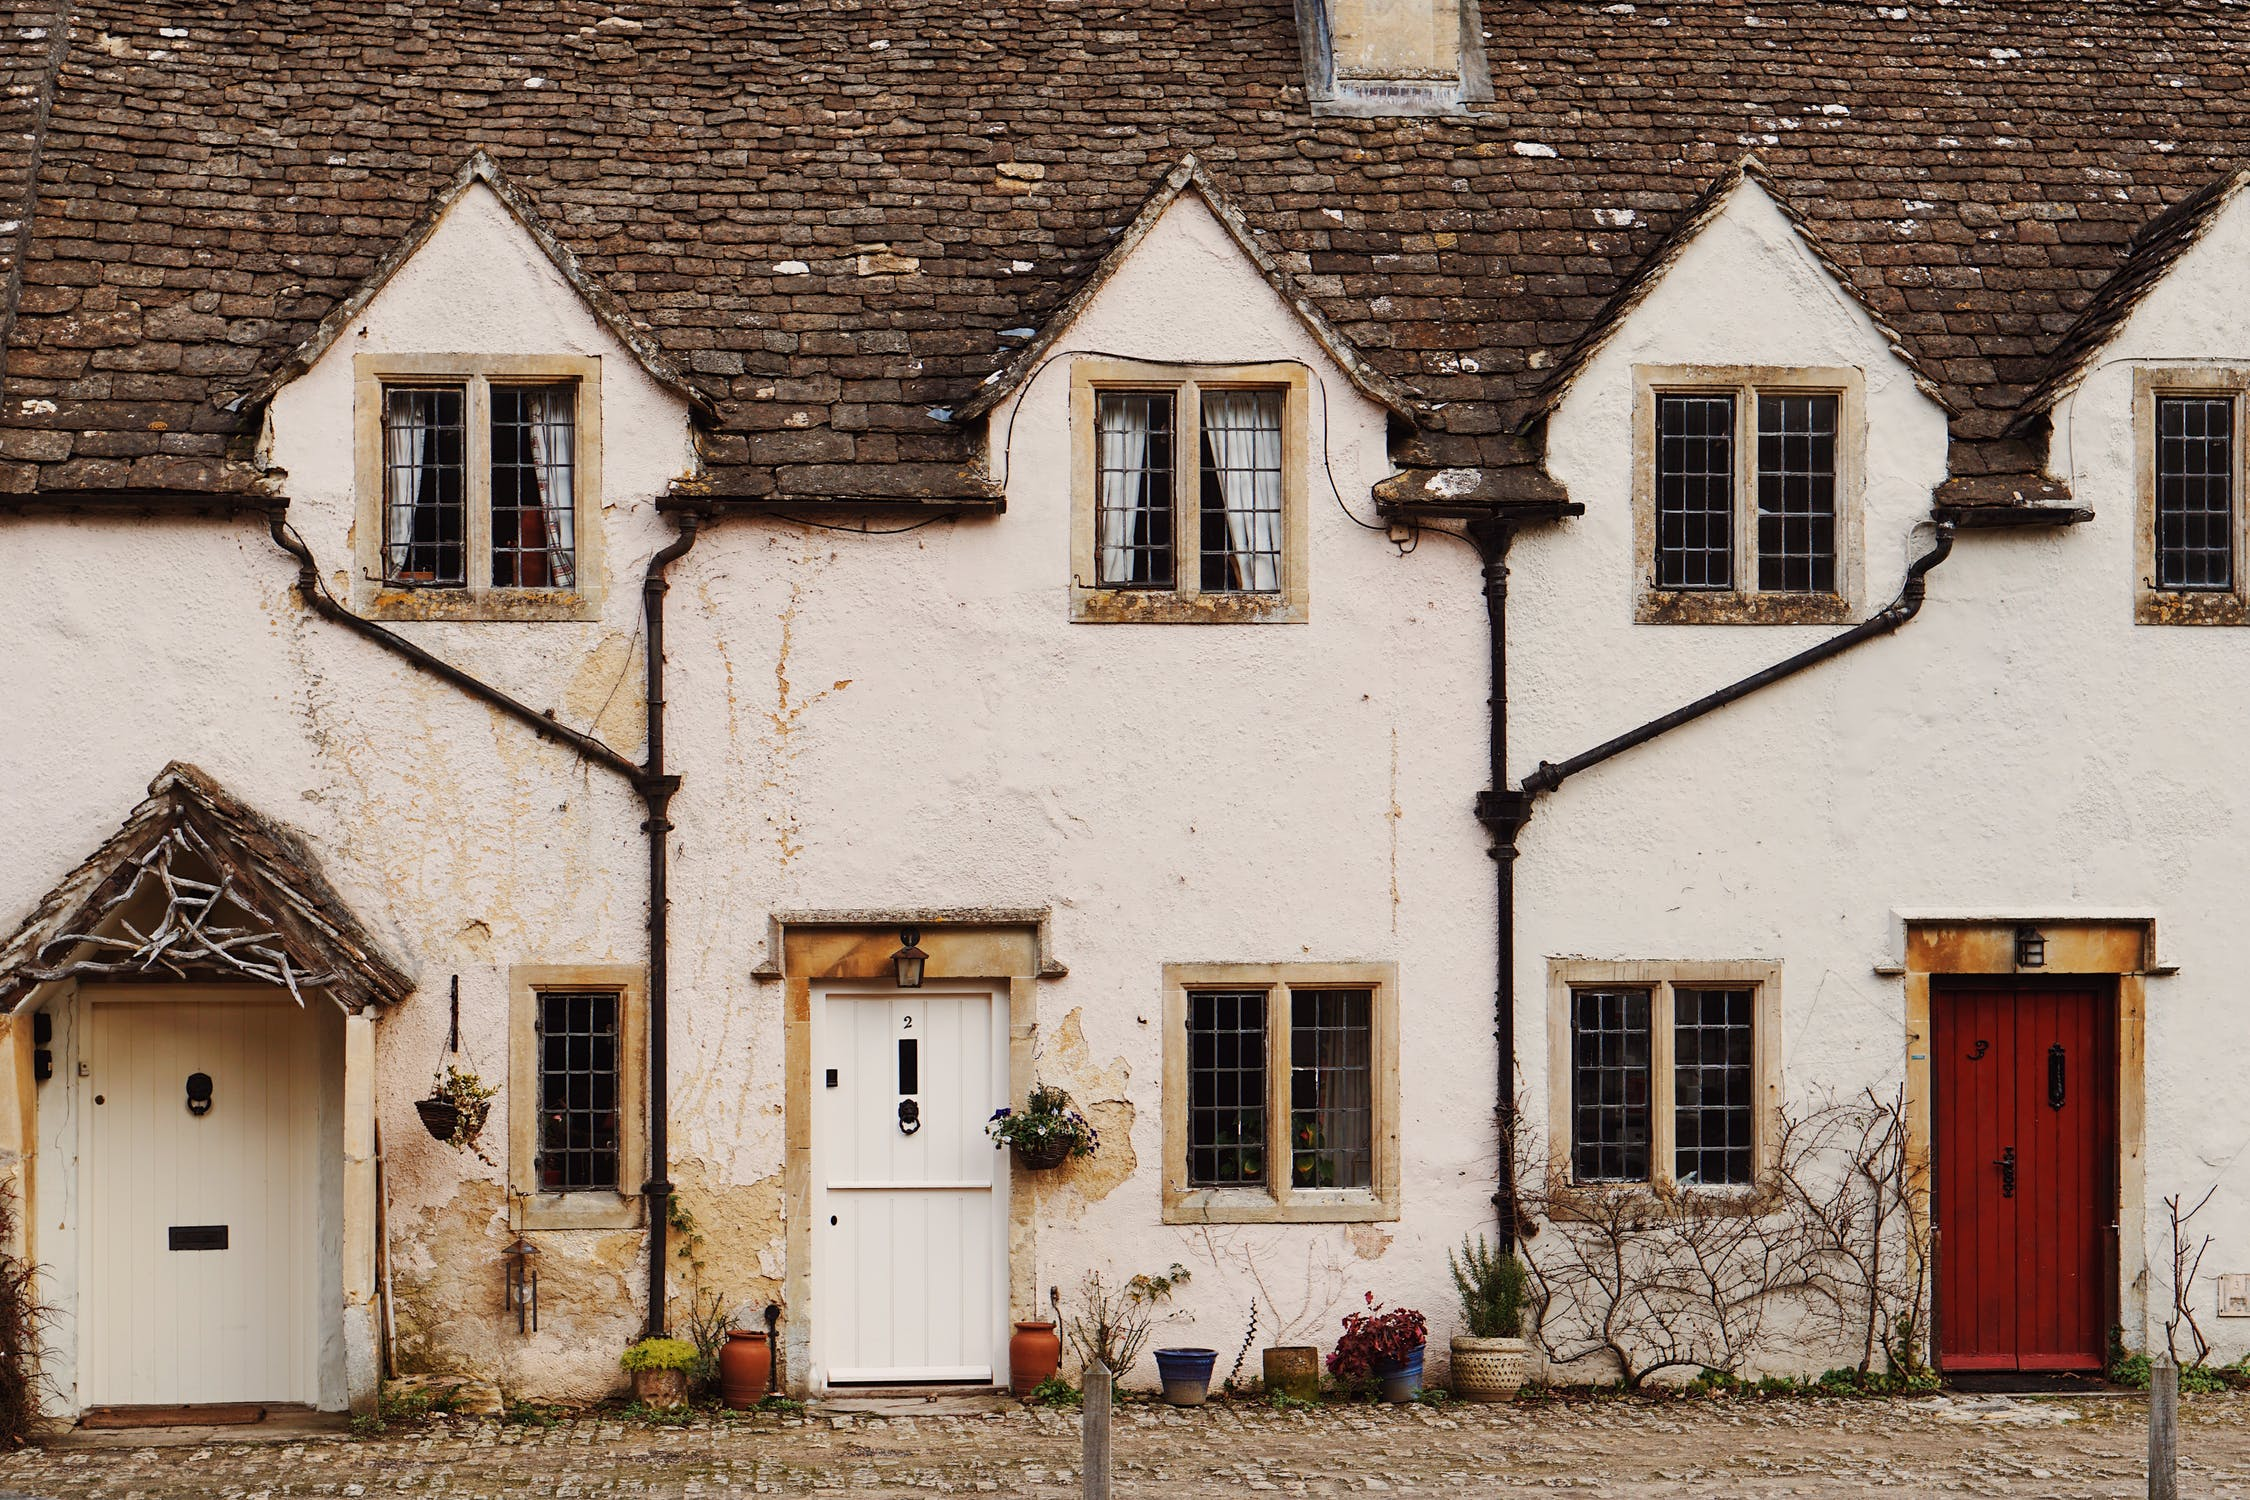 What Common Problems Do Landlords Face?